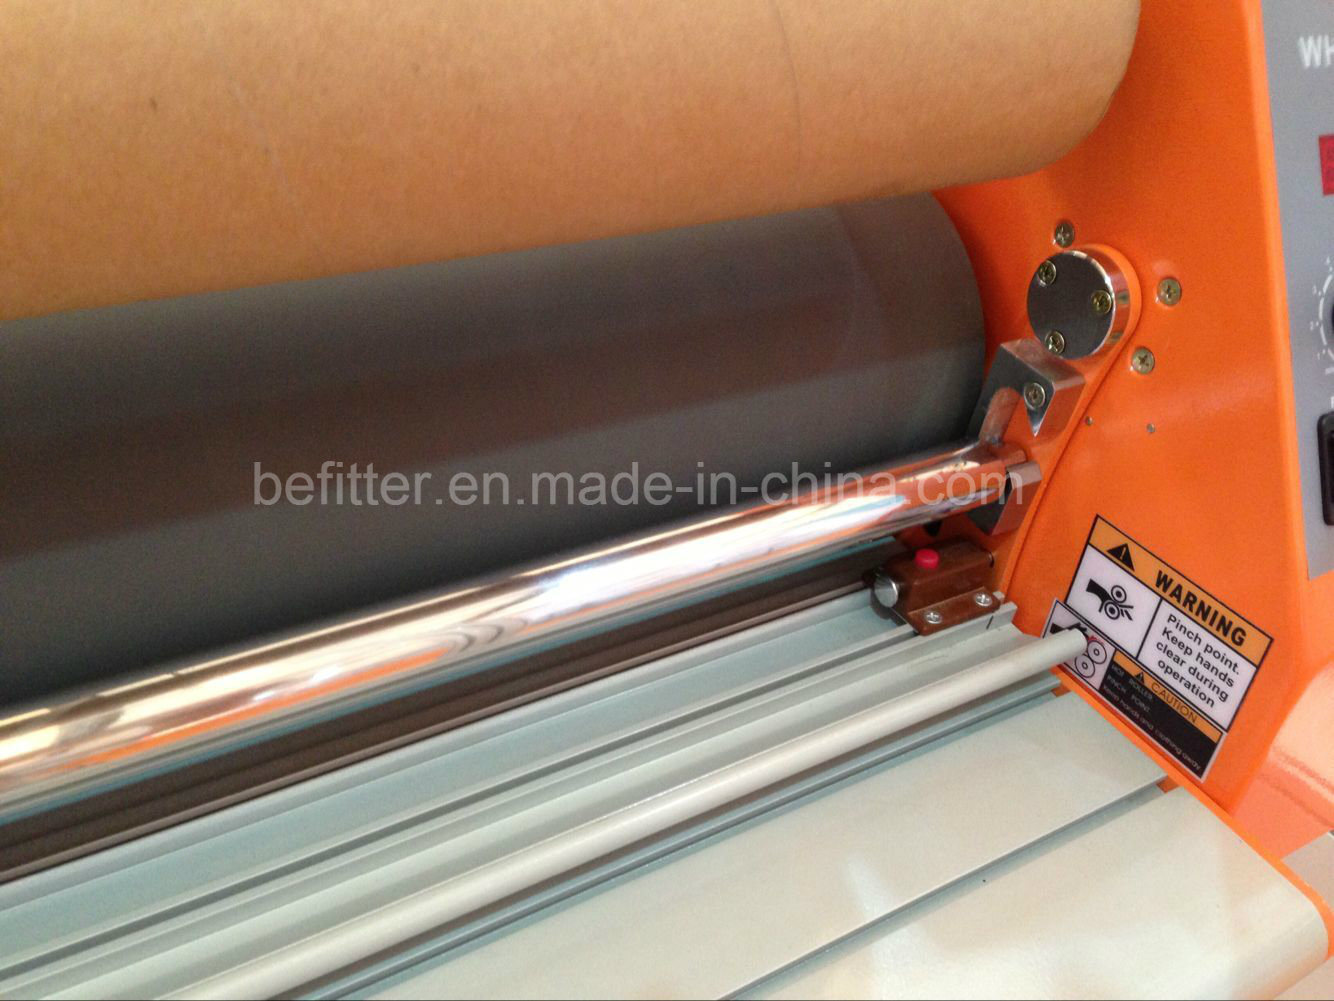 "Wh-1600lh 1.6m 63"" Cold Laminator with 60 Degree Temperature Assist"